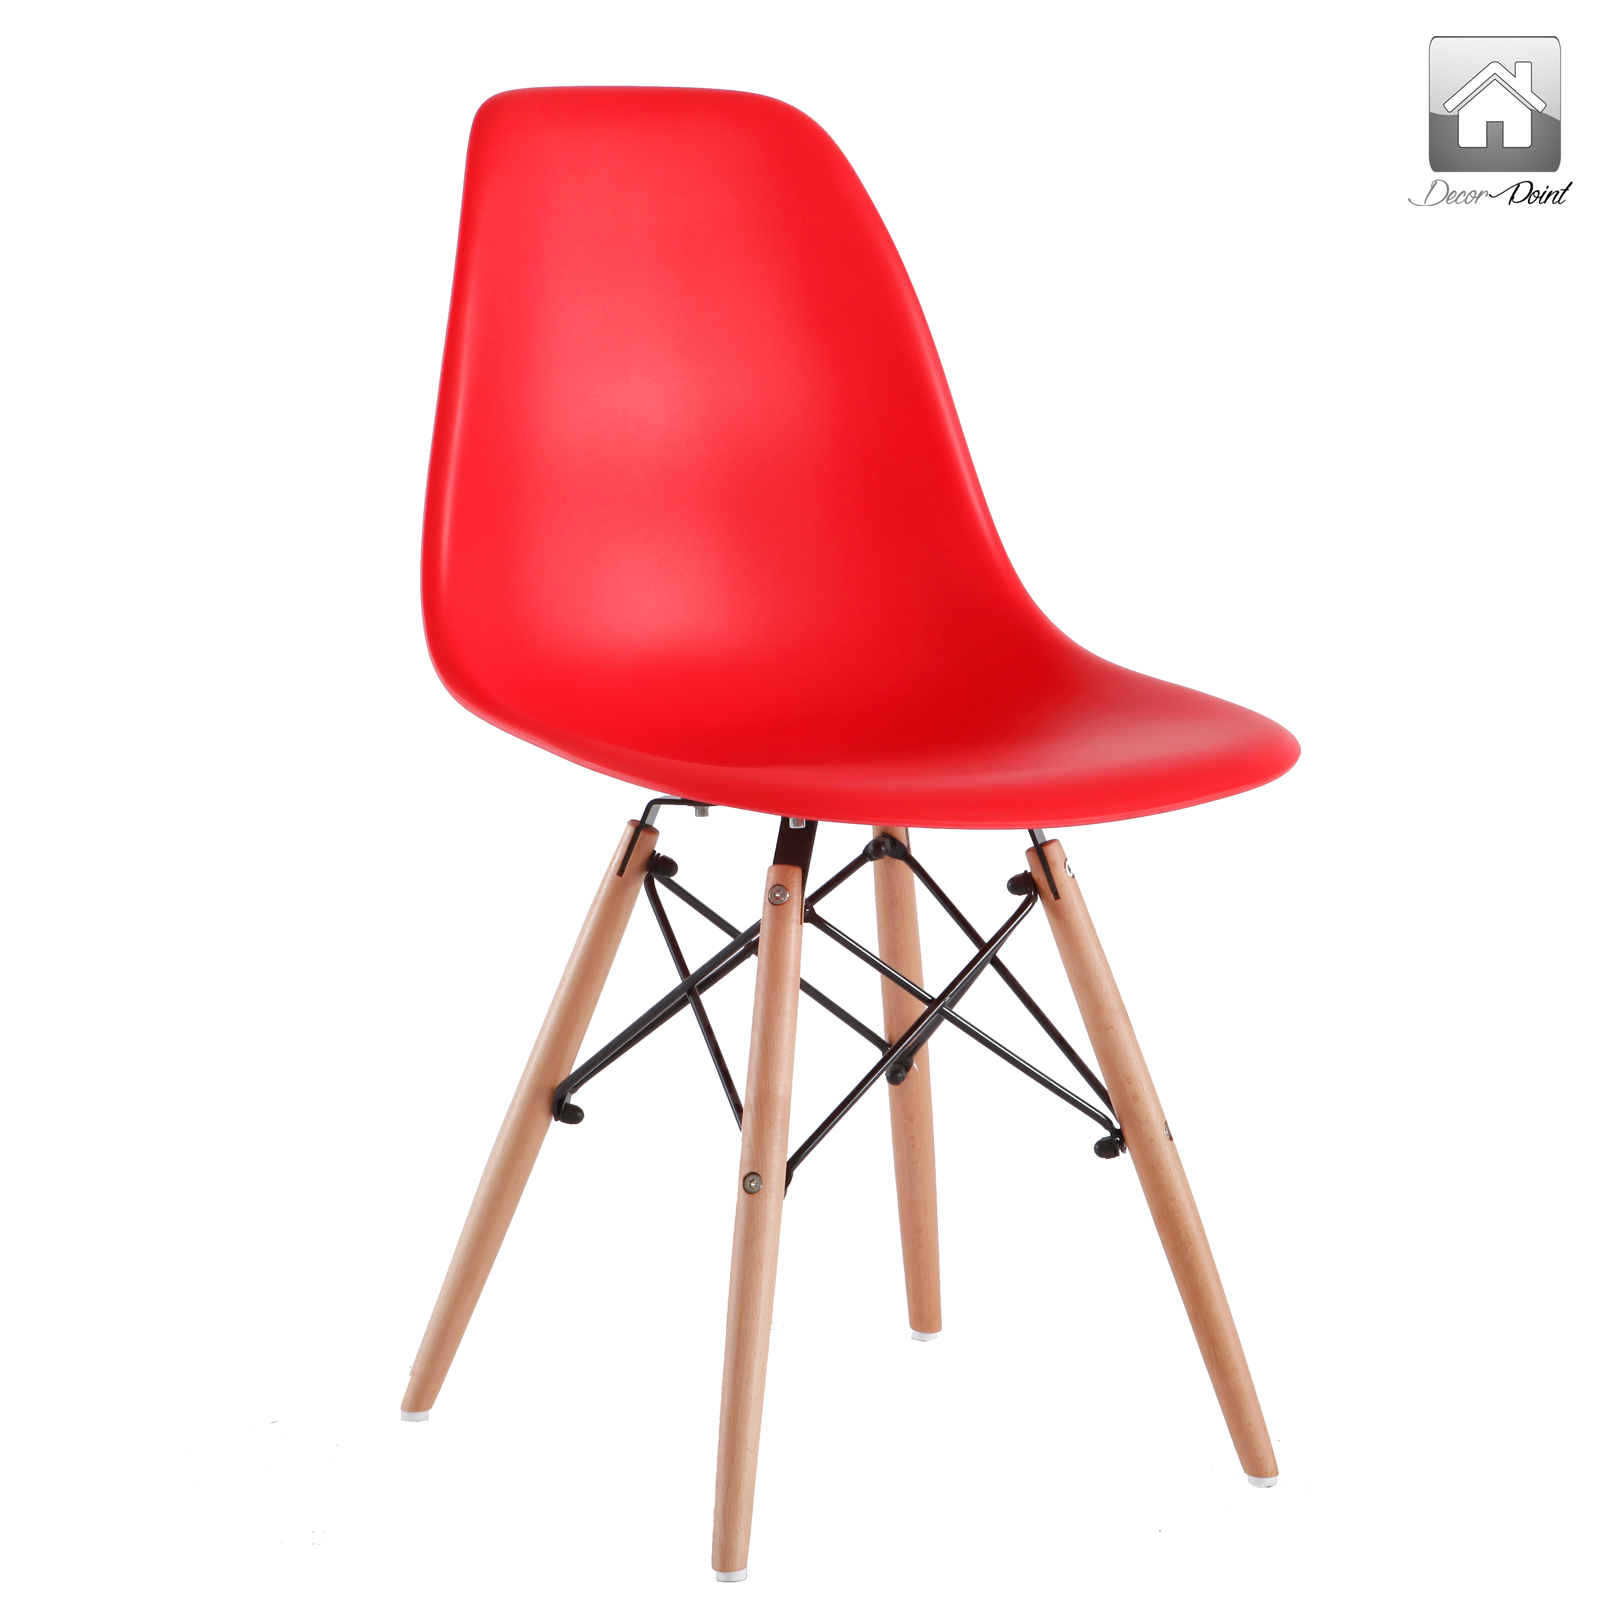 12 x retro replica eames chick dsw dining chairs office for Eames dsw replica